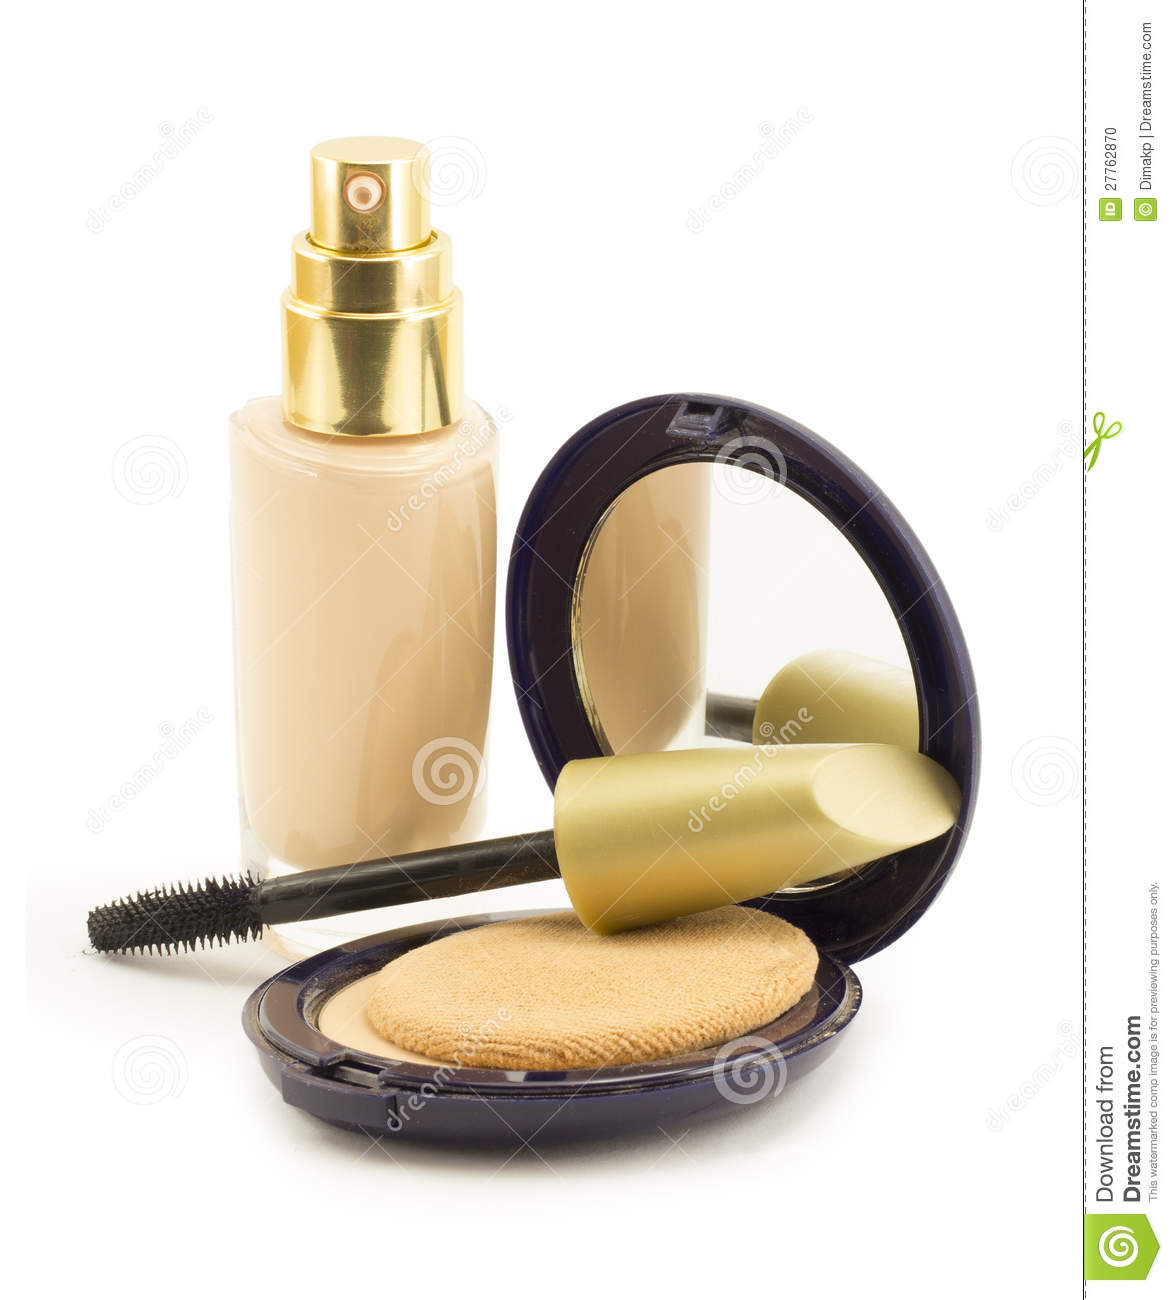 Cosmetics for face